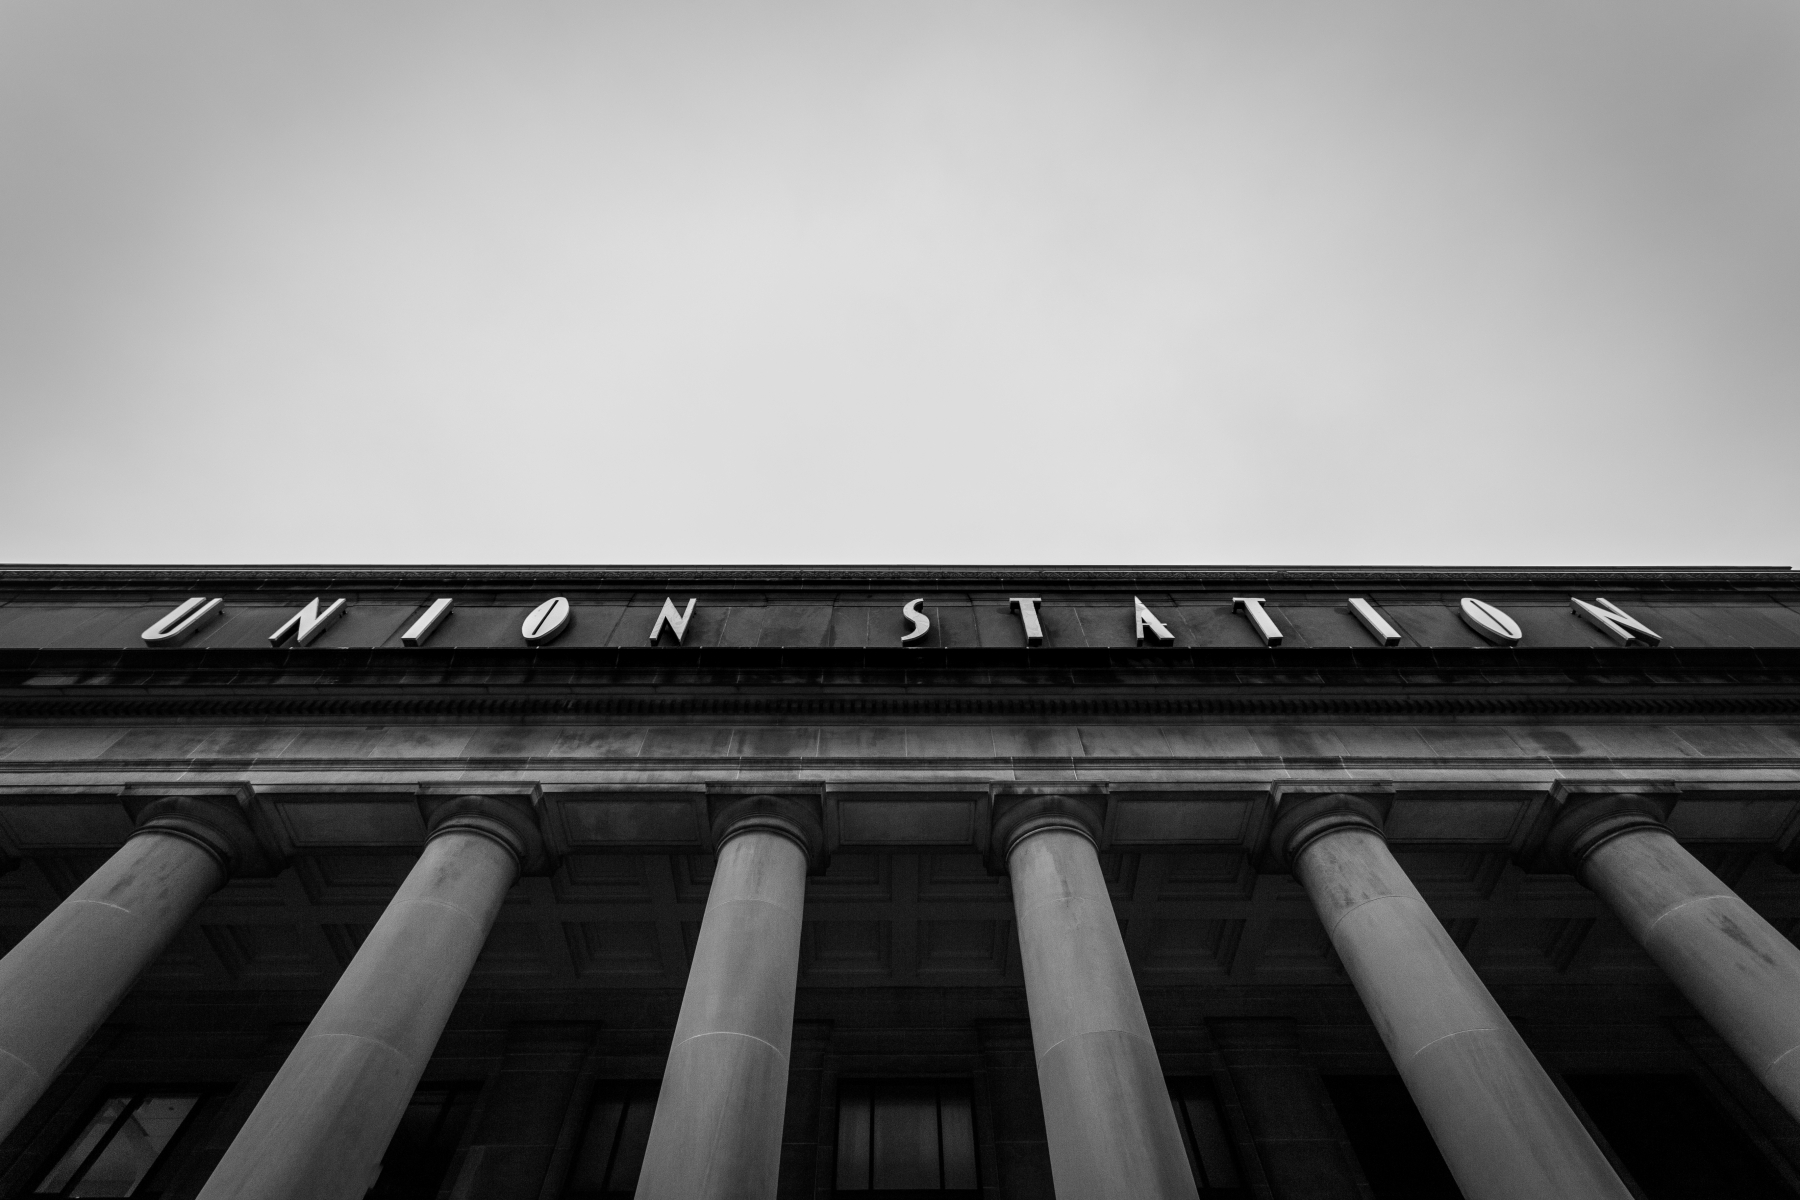 Union Station: Chicago